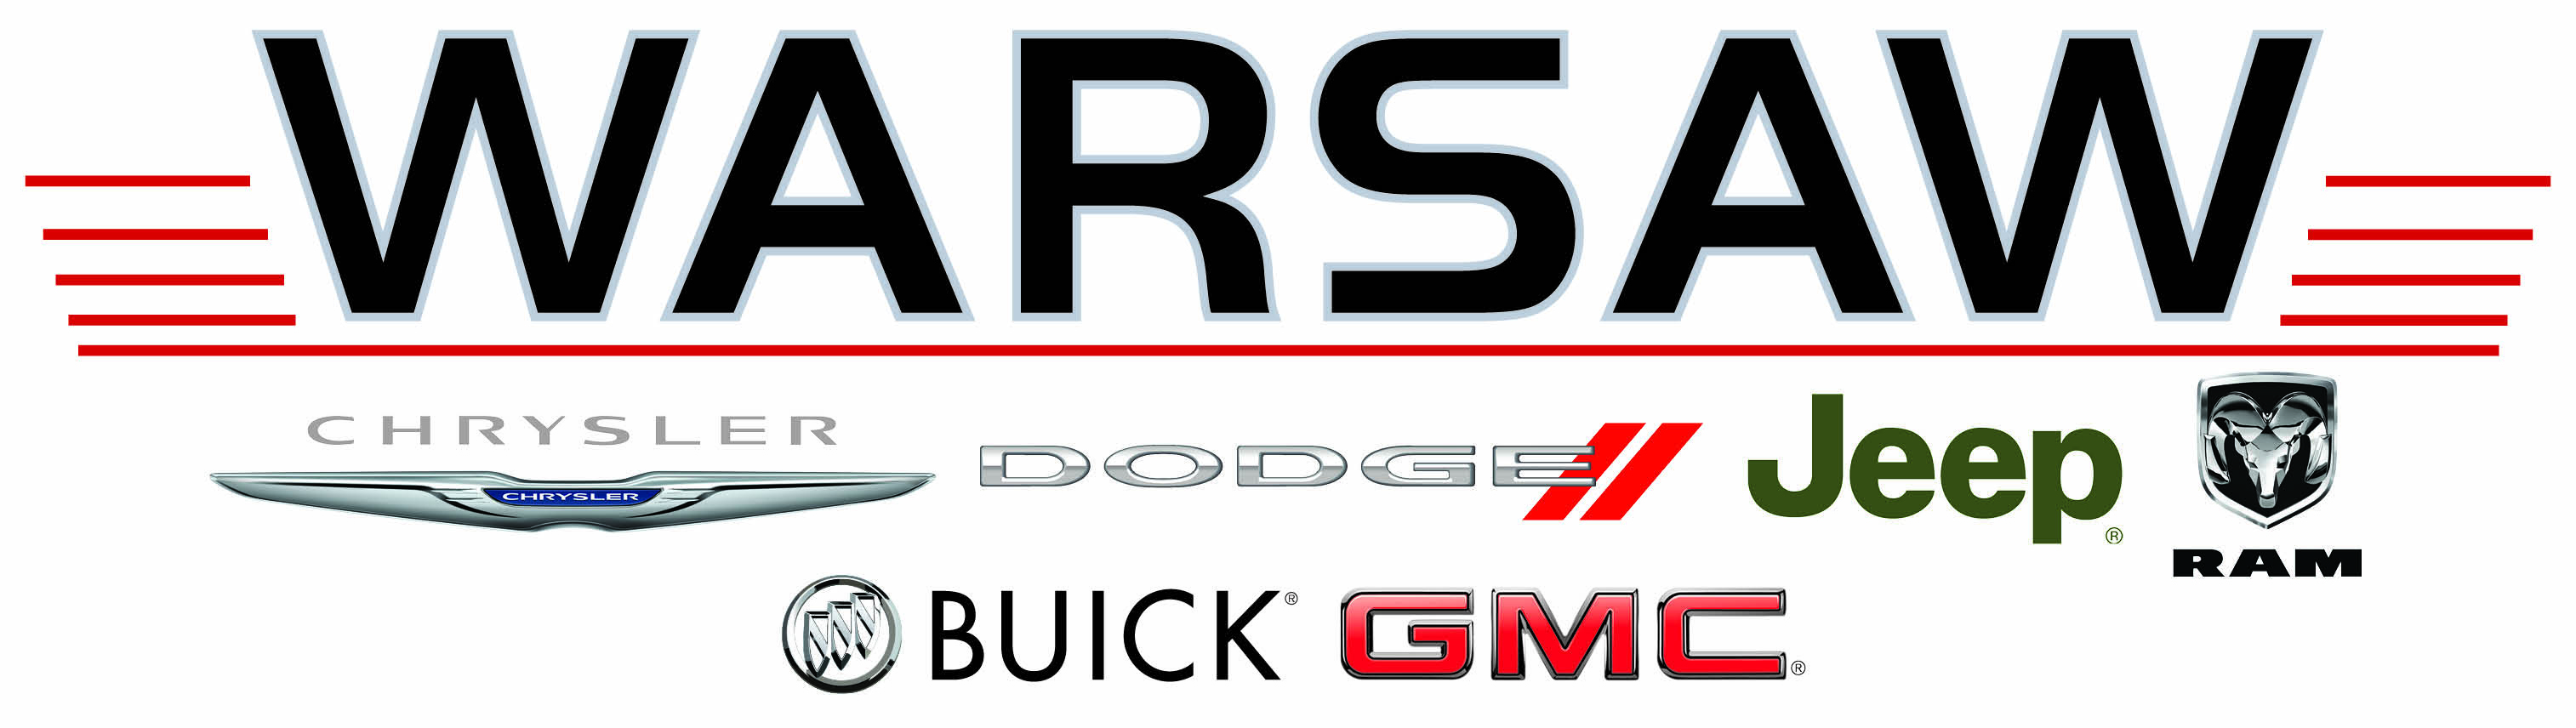 Blog additionally Ram 2500 Fuel Forged Ff02 G 16664 as well Grupo Antolin  pletes Purchase Of Magna Interiors Unit together with Srt Logo Wallpaper in addition Glenbrookautomotivegroup. on dodge ram logo